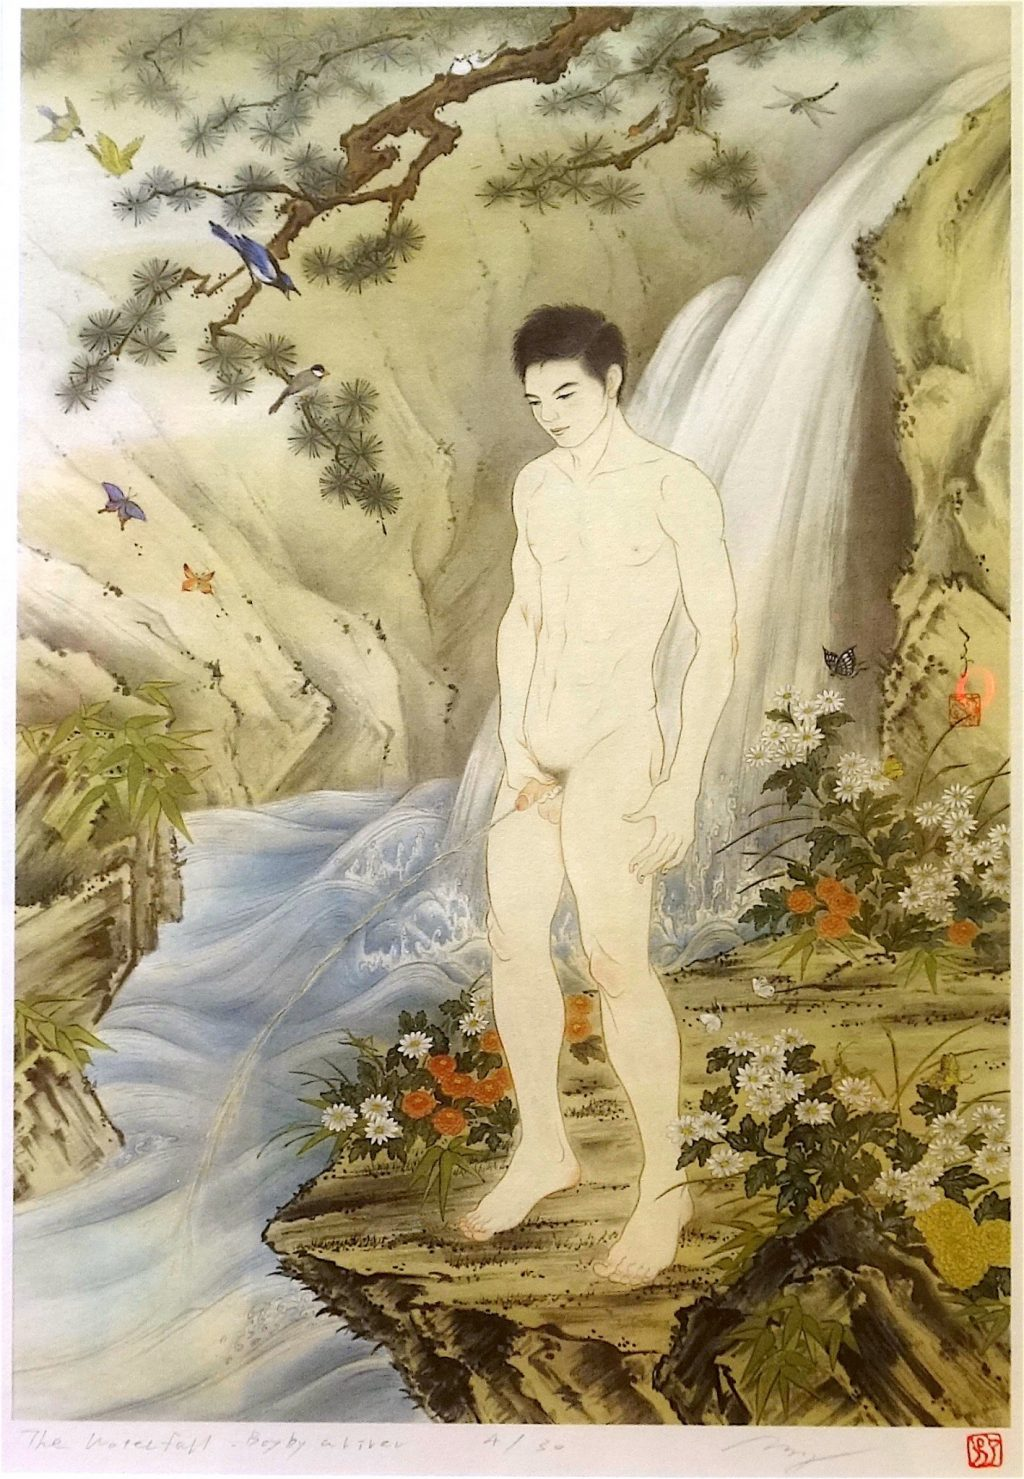 KIMURA Ryoko 木村了子 「瀧図 – 水辺の少年」 (The Waterfall – Boy by a River) edition work